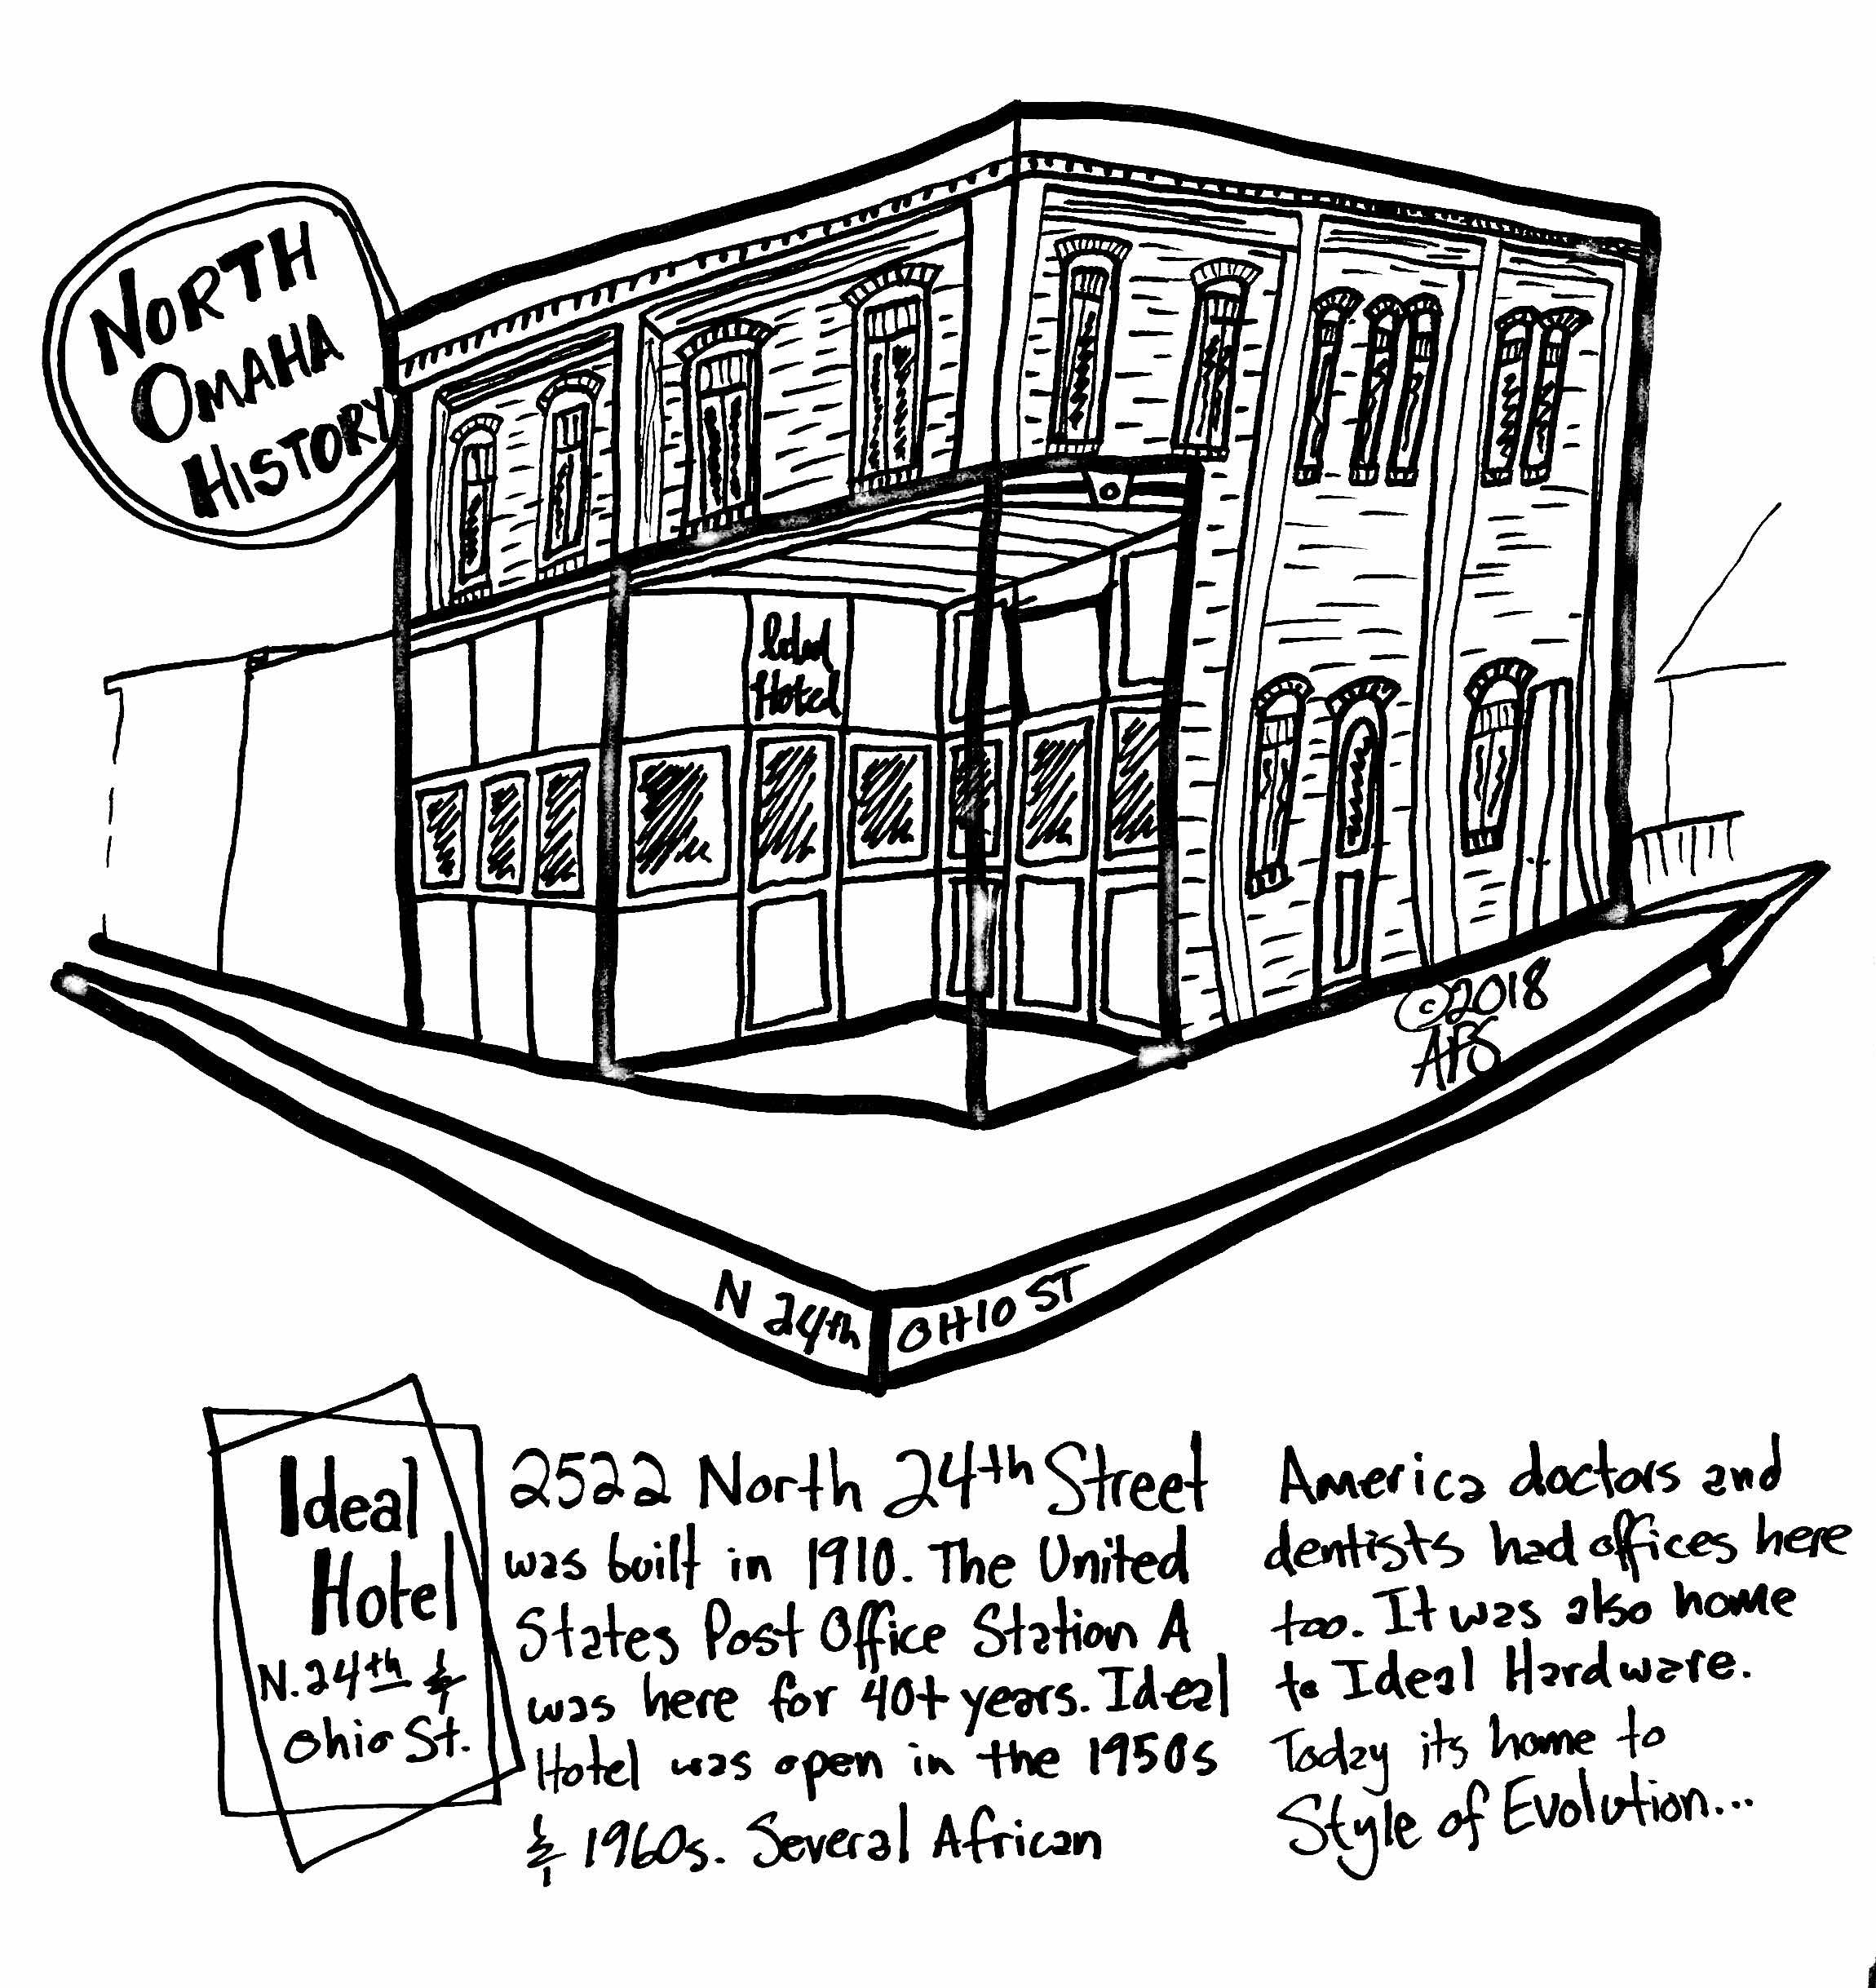 A History Of The 24th And Lake Historic District In North